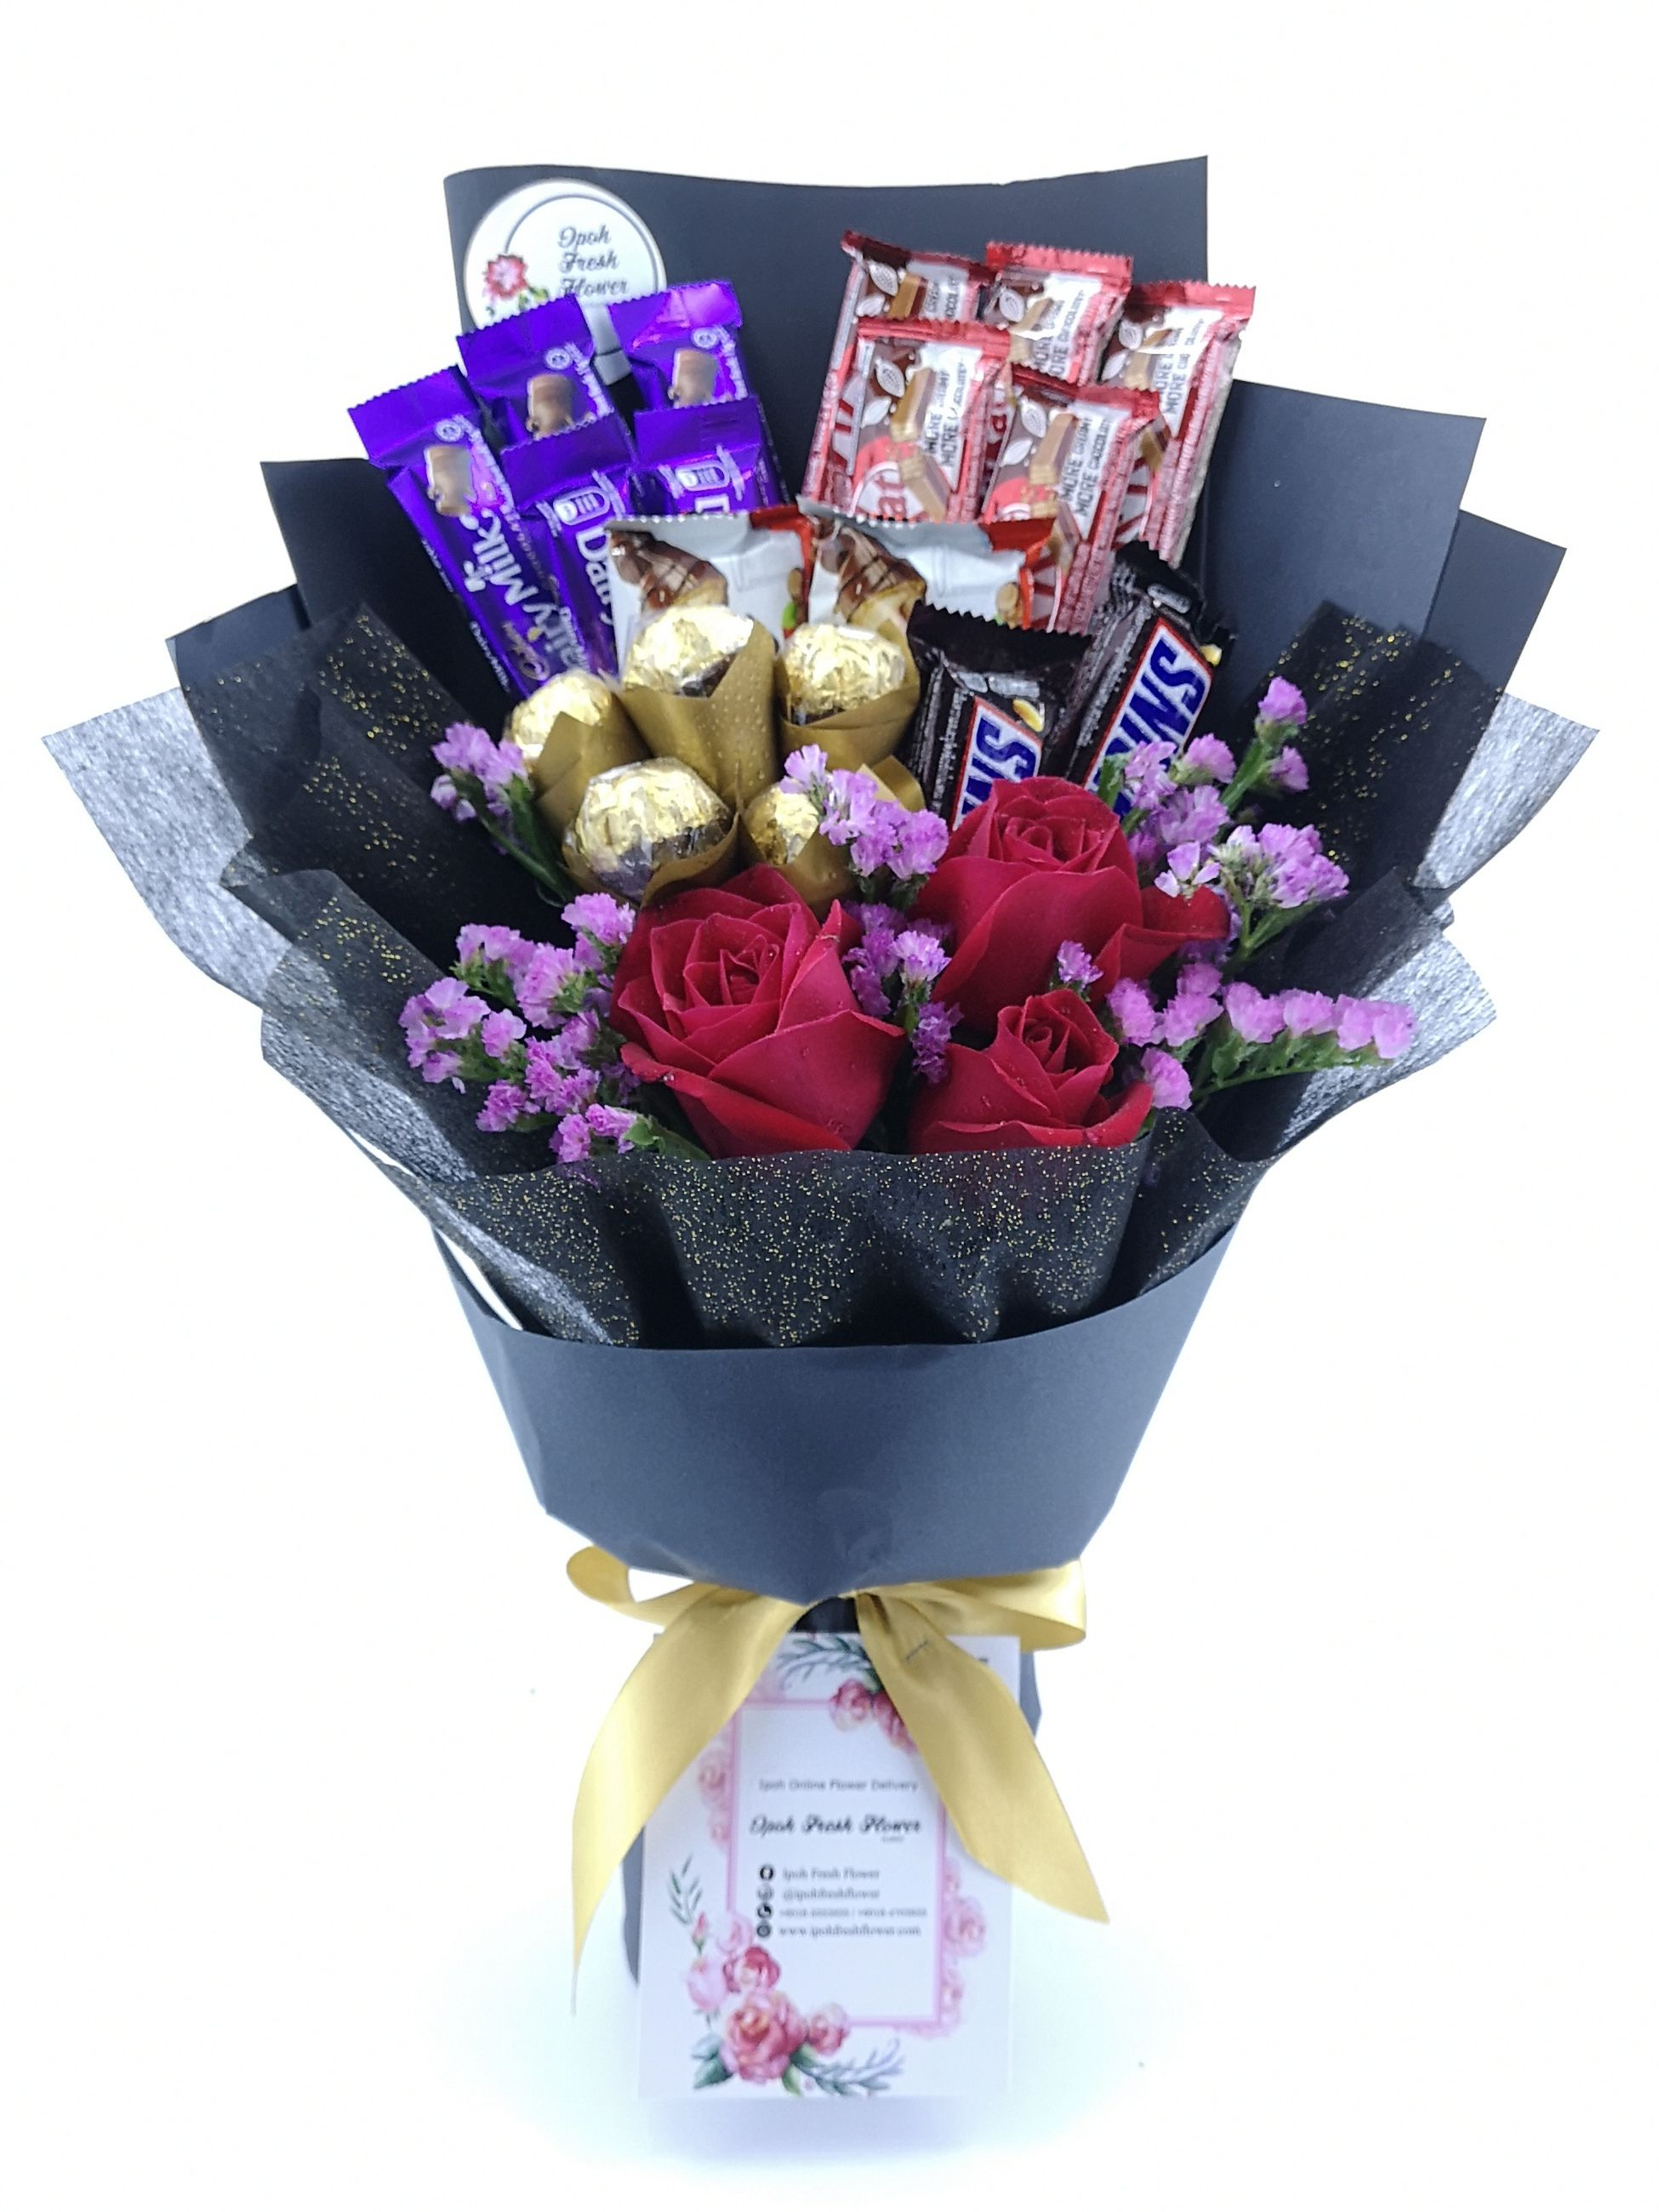 Customise chocolate bouquet for your lovelydelivery gift